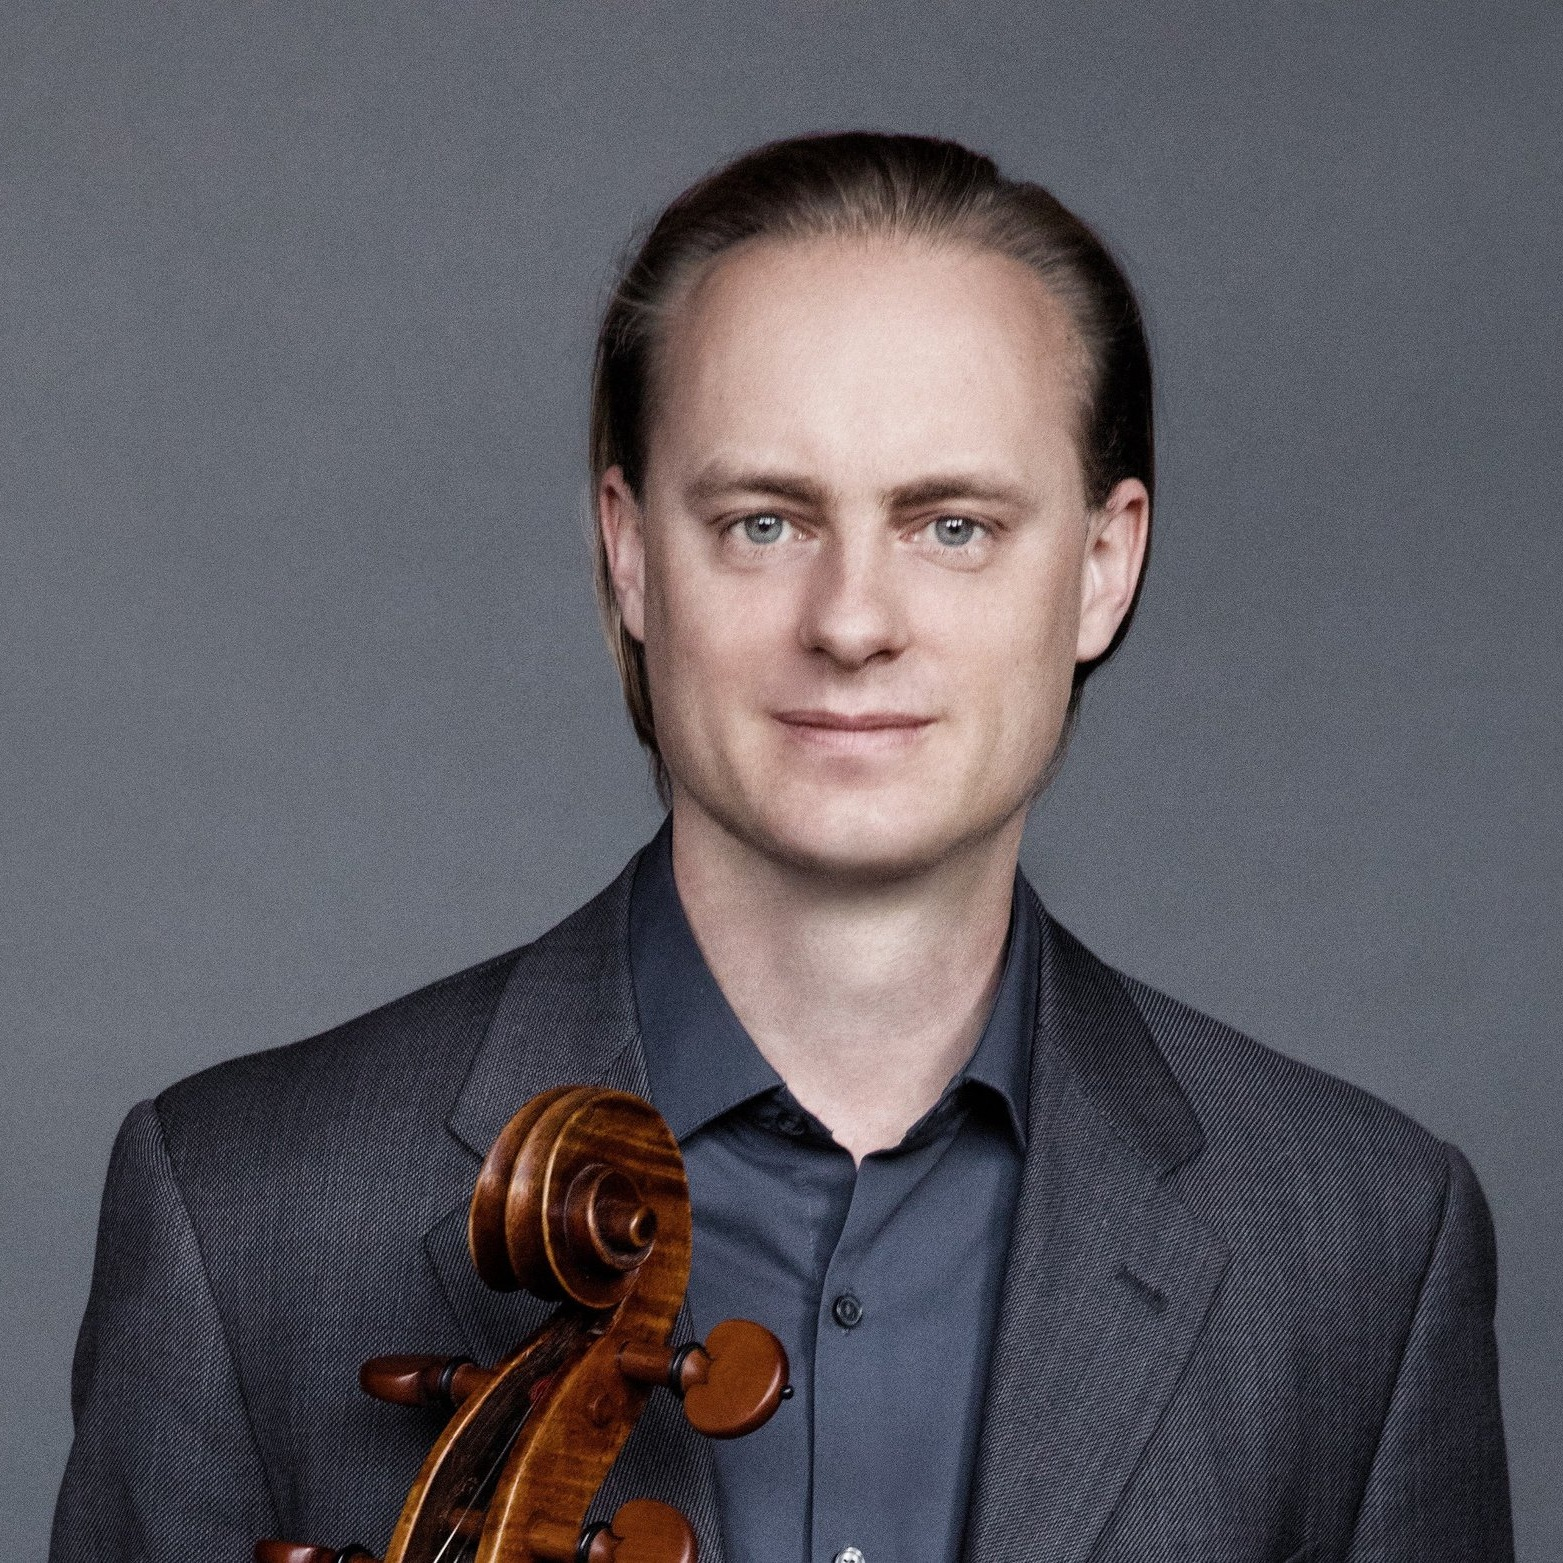 Gregory Beaver, Principal Cello